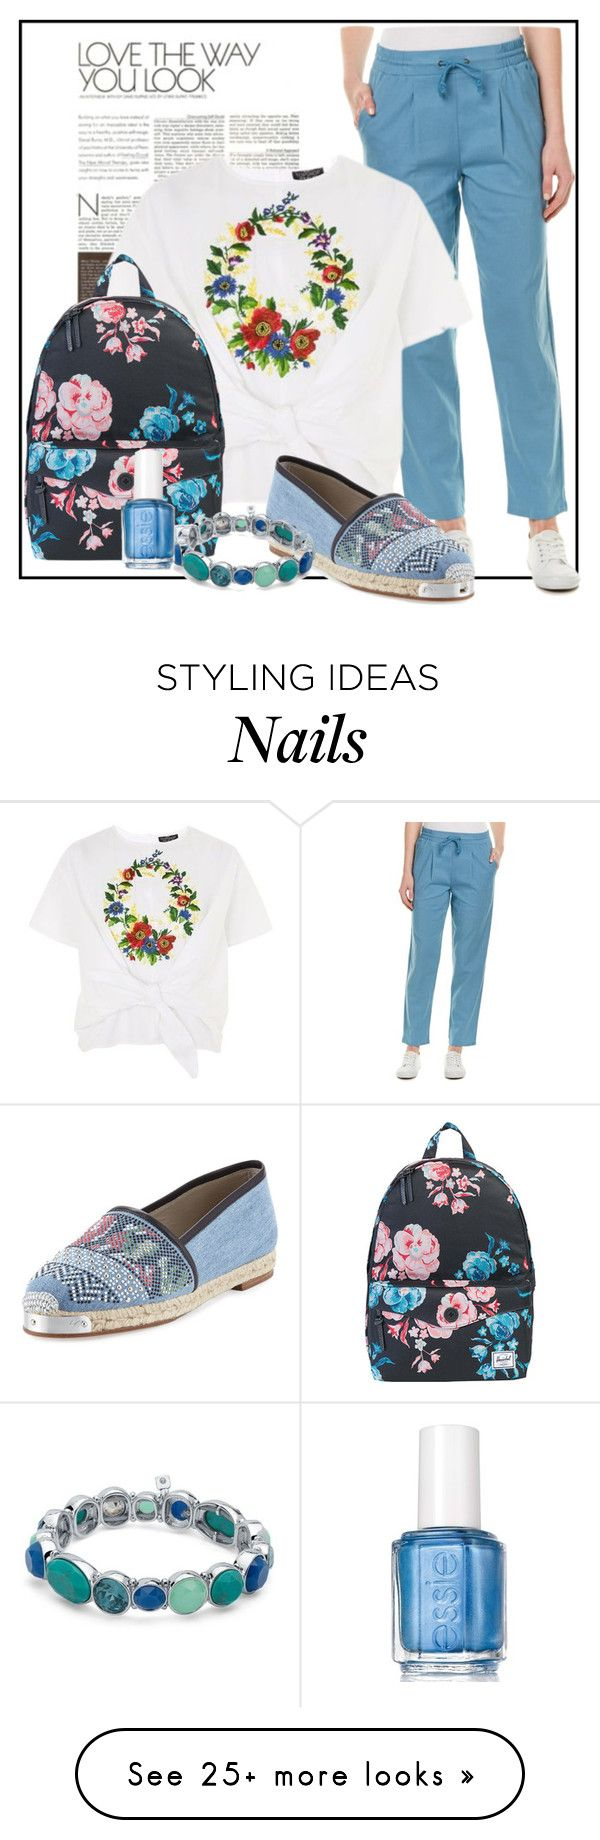 """""""Love the way you look (Spring)"""" by velvetmahya on Polyvore featuring G.H. Bass & Co., Topshop, Herschel Supply Co., Giuseppe Zanotti, Nine West, Essie and springshoes"""